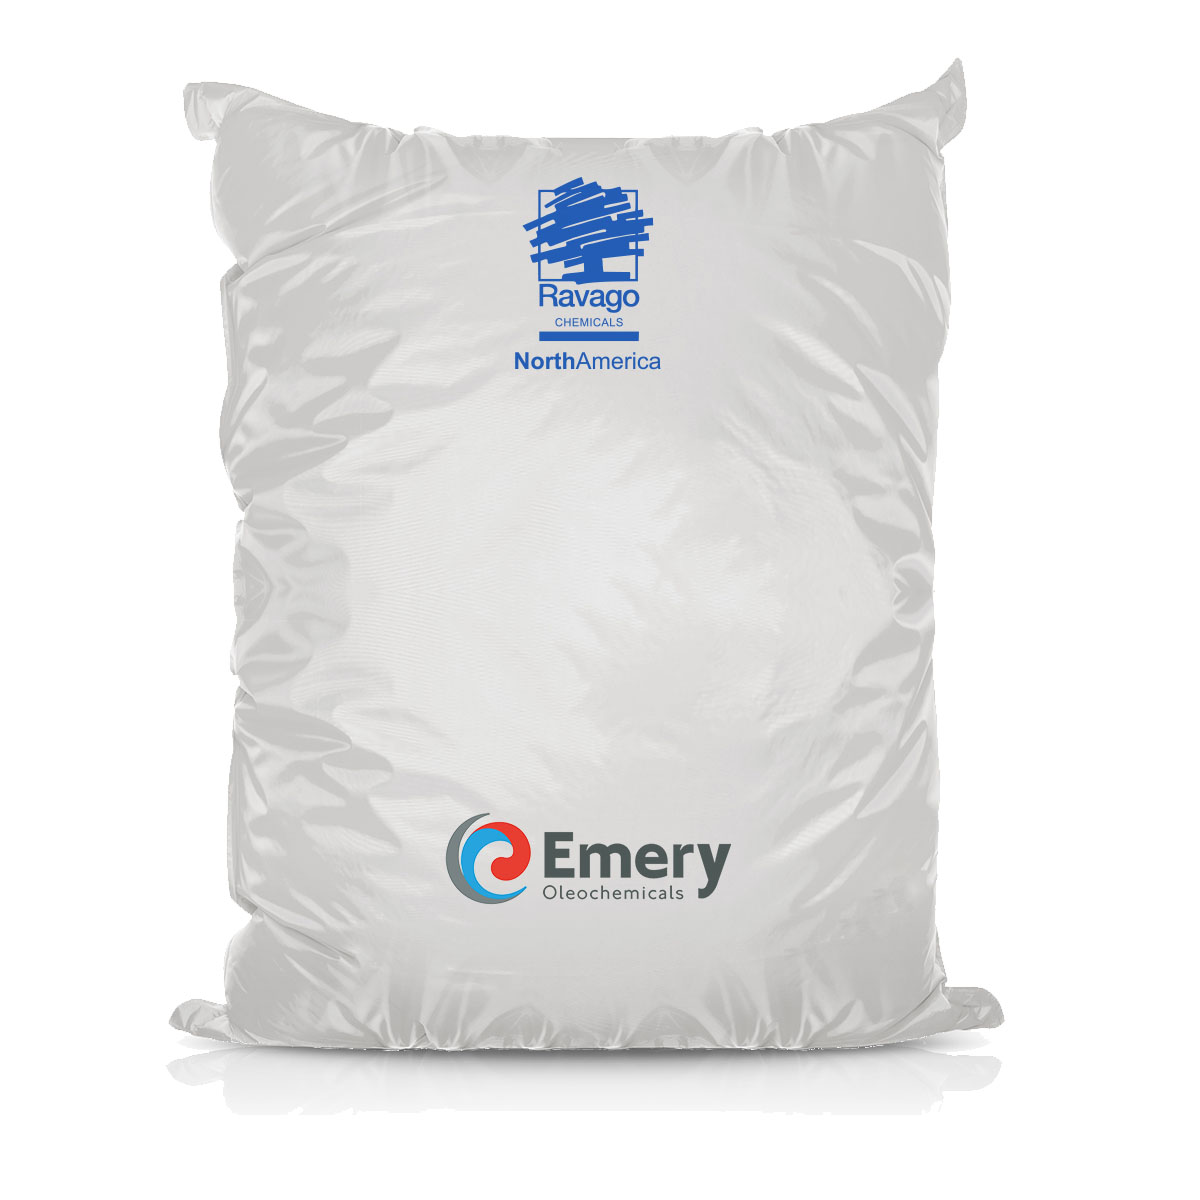 EMERY 655 BD RSPO MB PACKAGING